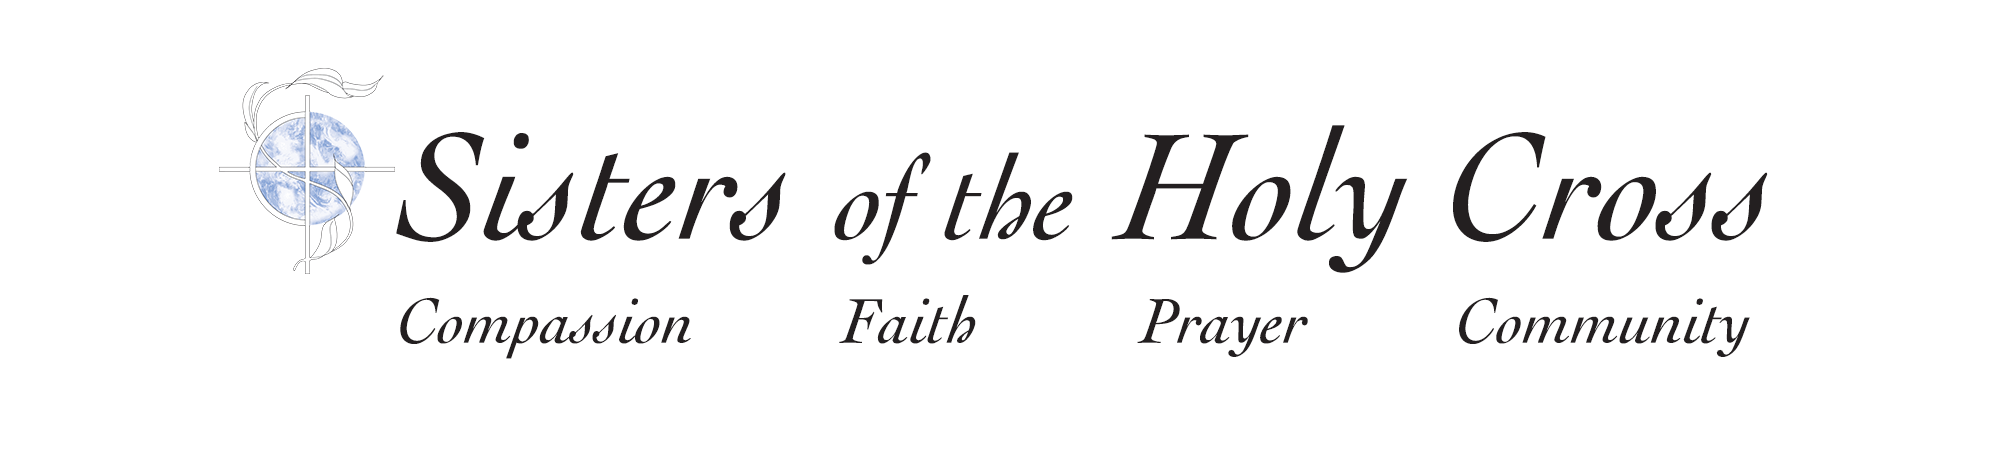 Sisters of the Holy Cross | Responding to the needs of the world